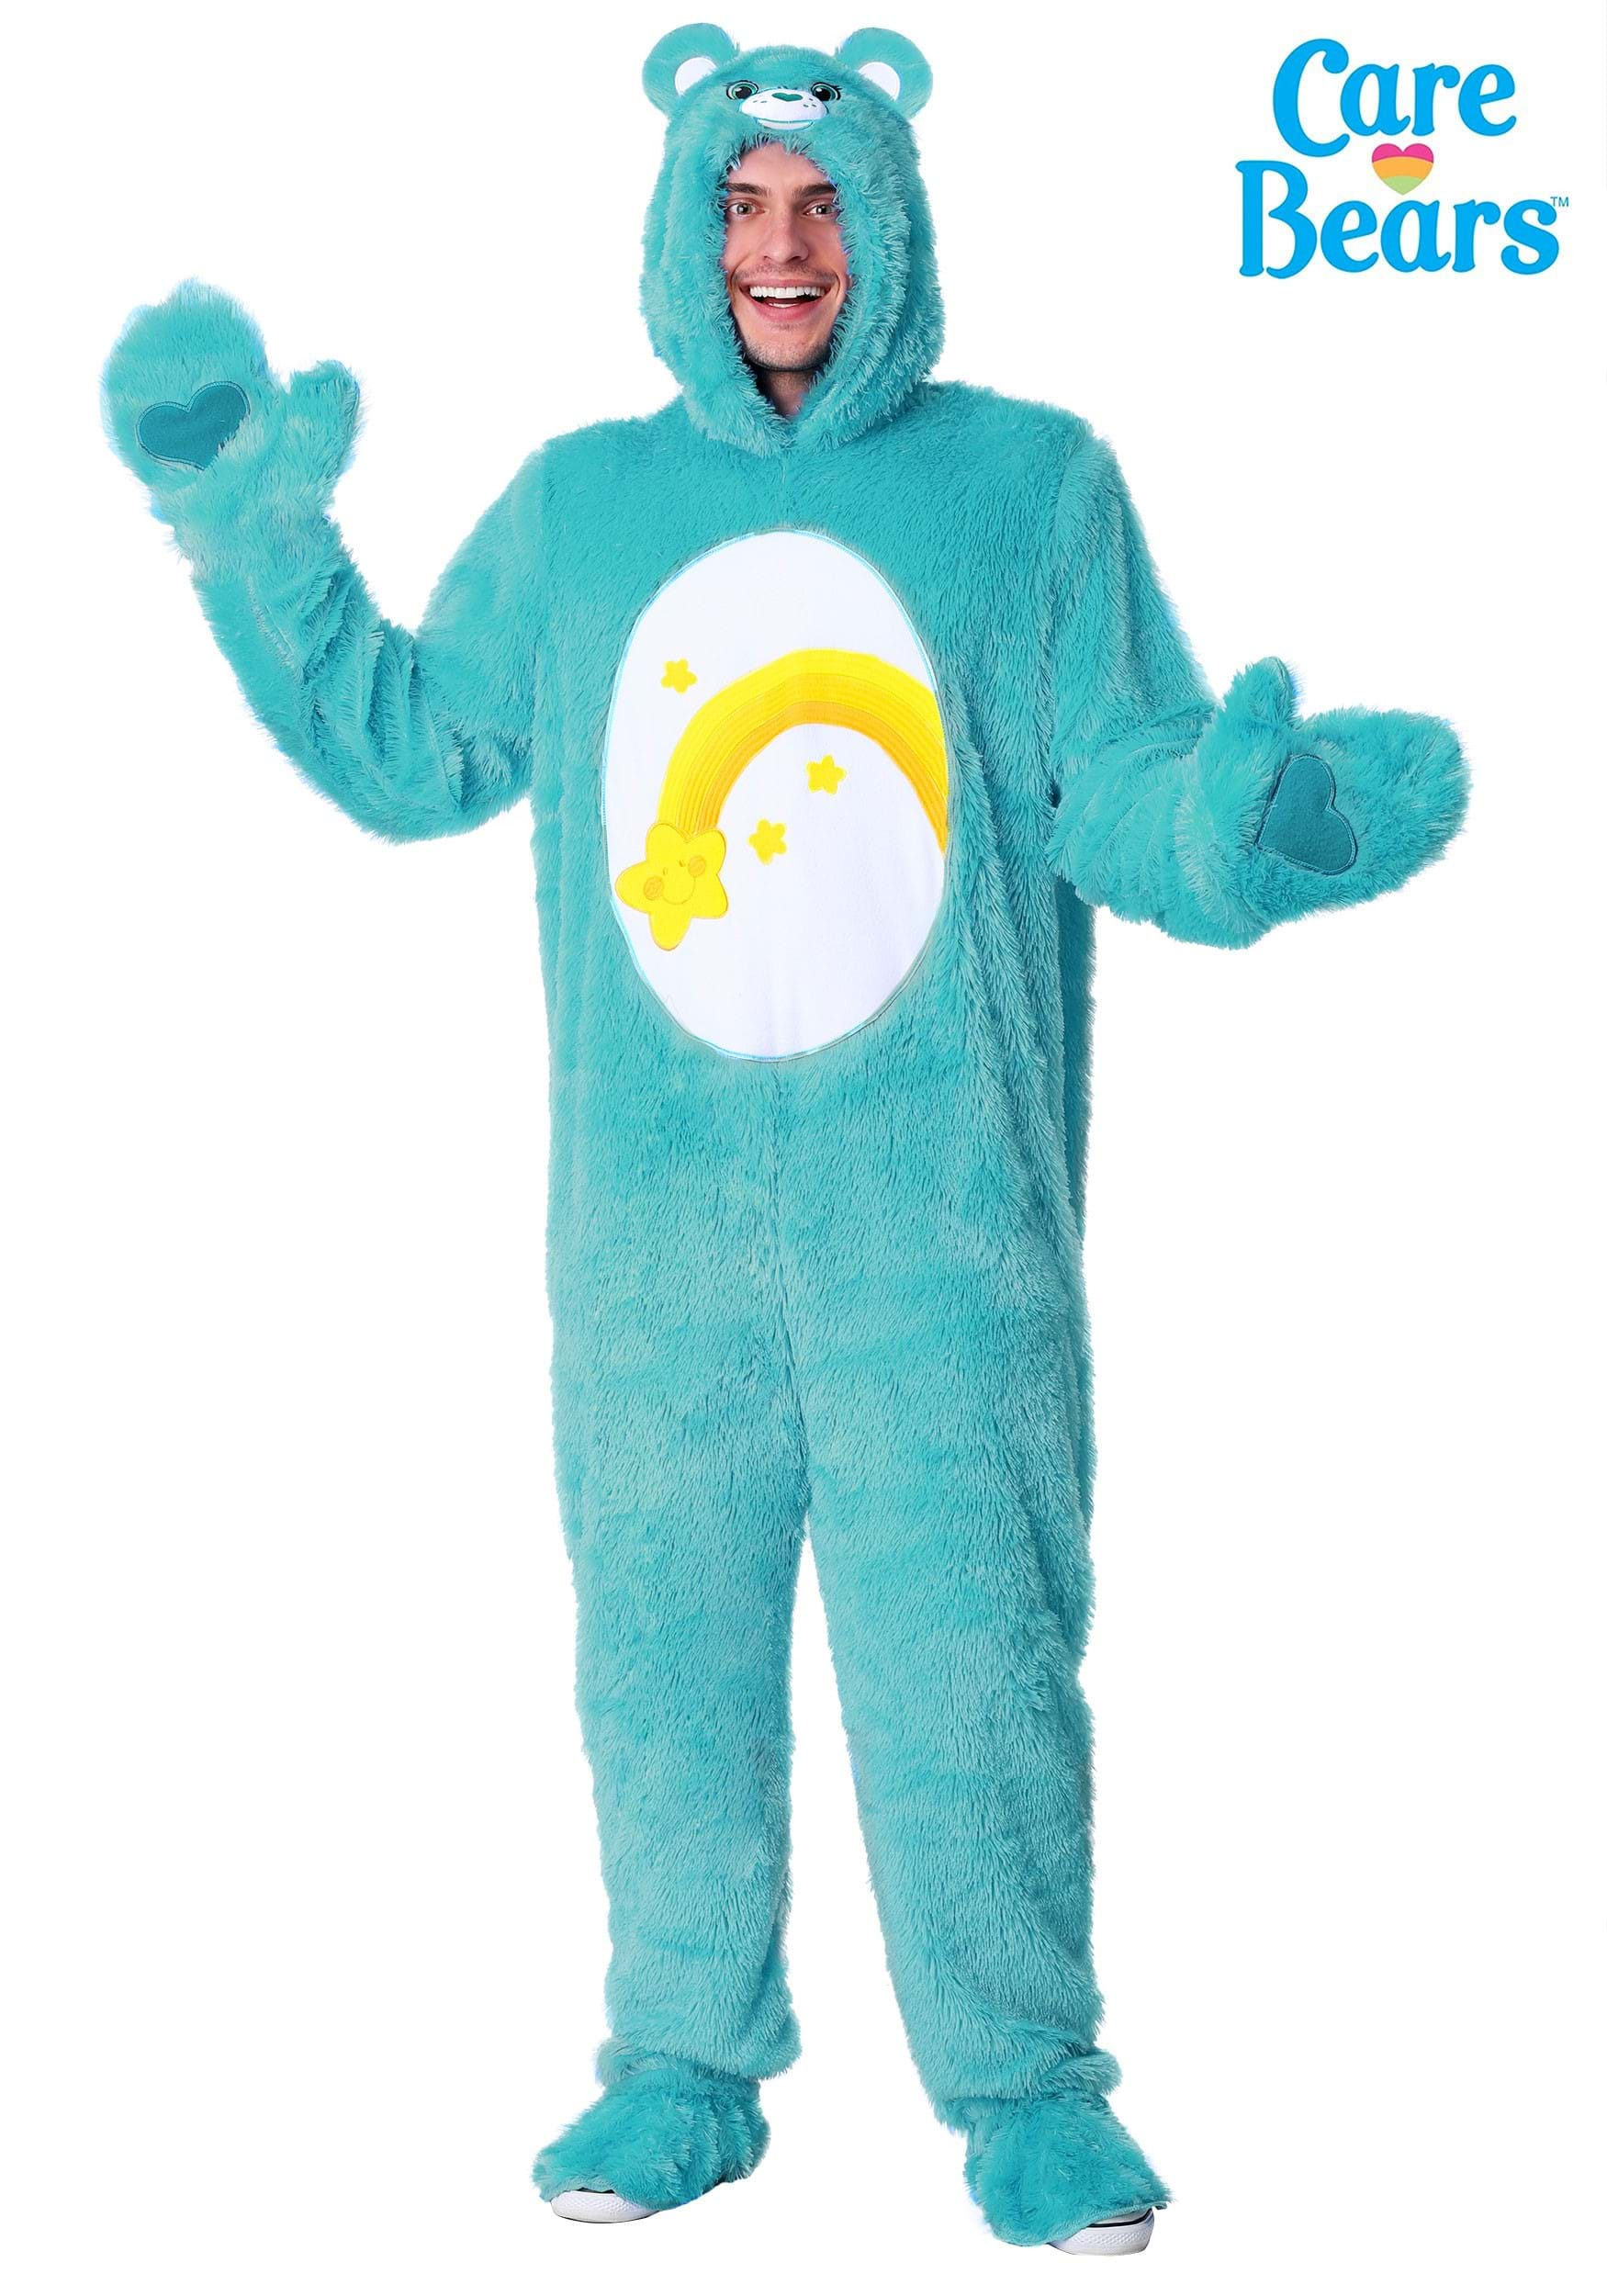 Care Bears Wish Bear Costume for Adults